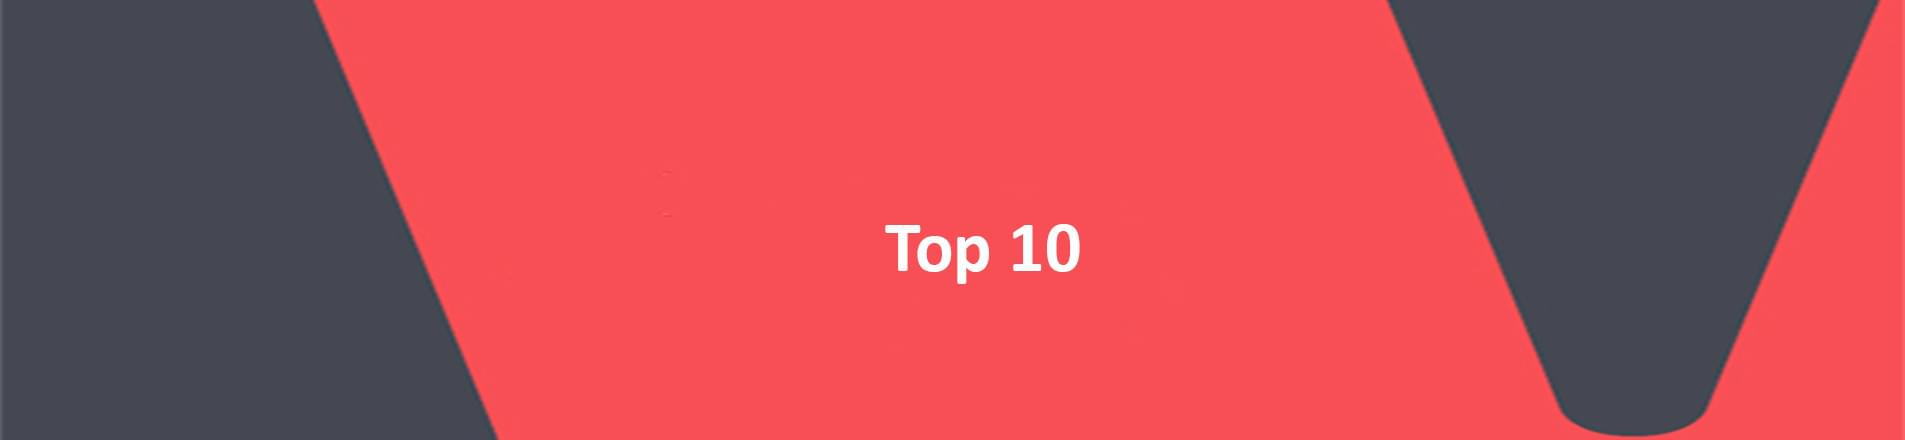 The words Top 10 in white on a red VERCIDA branded background